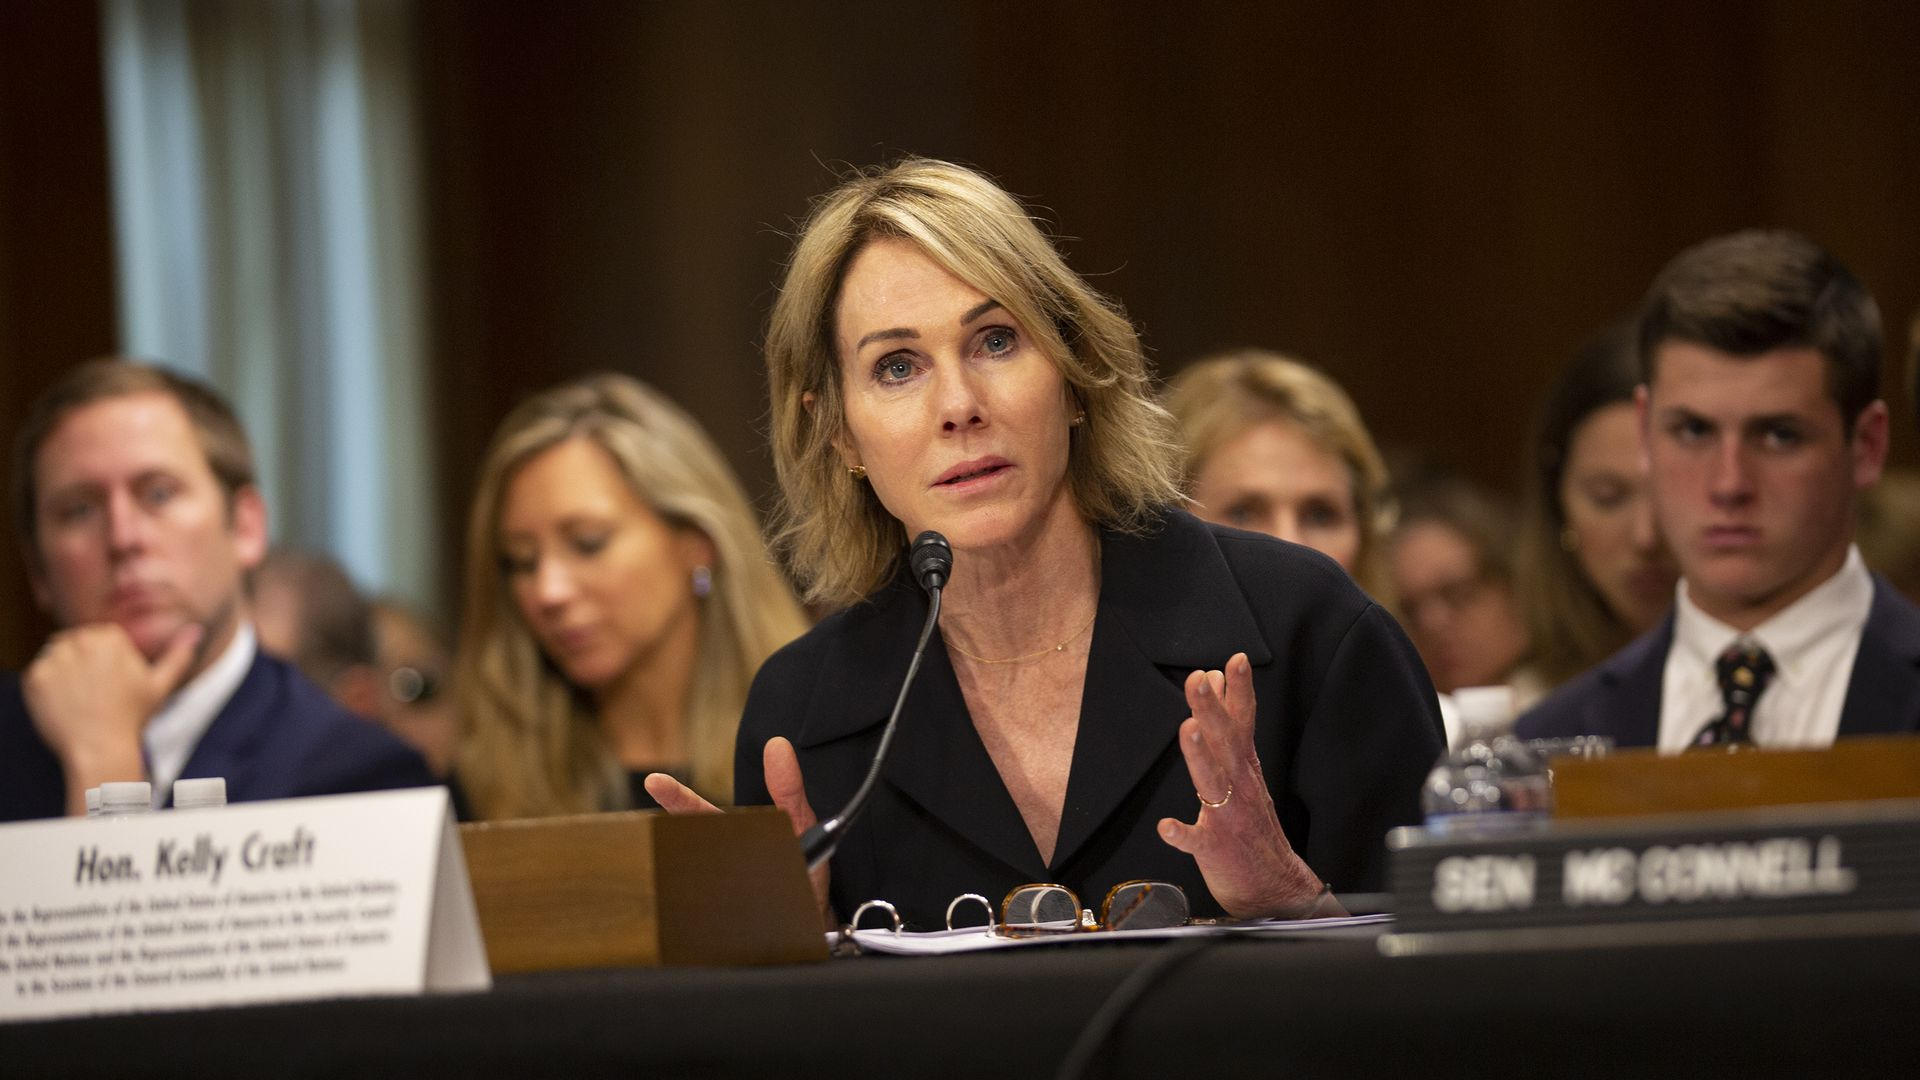 Kelly Craft testifies at her nomination hearing before the Senate Foreign Relations Committee